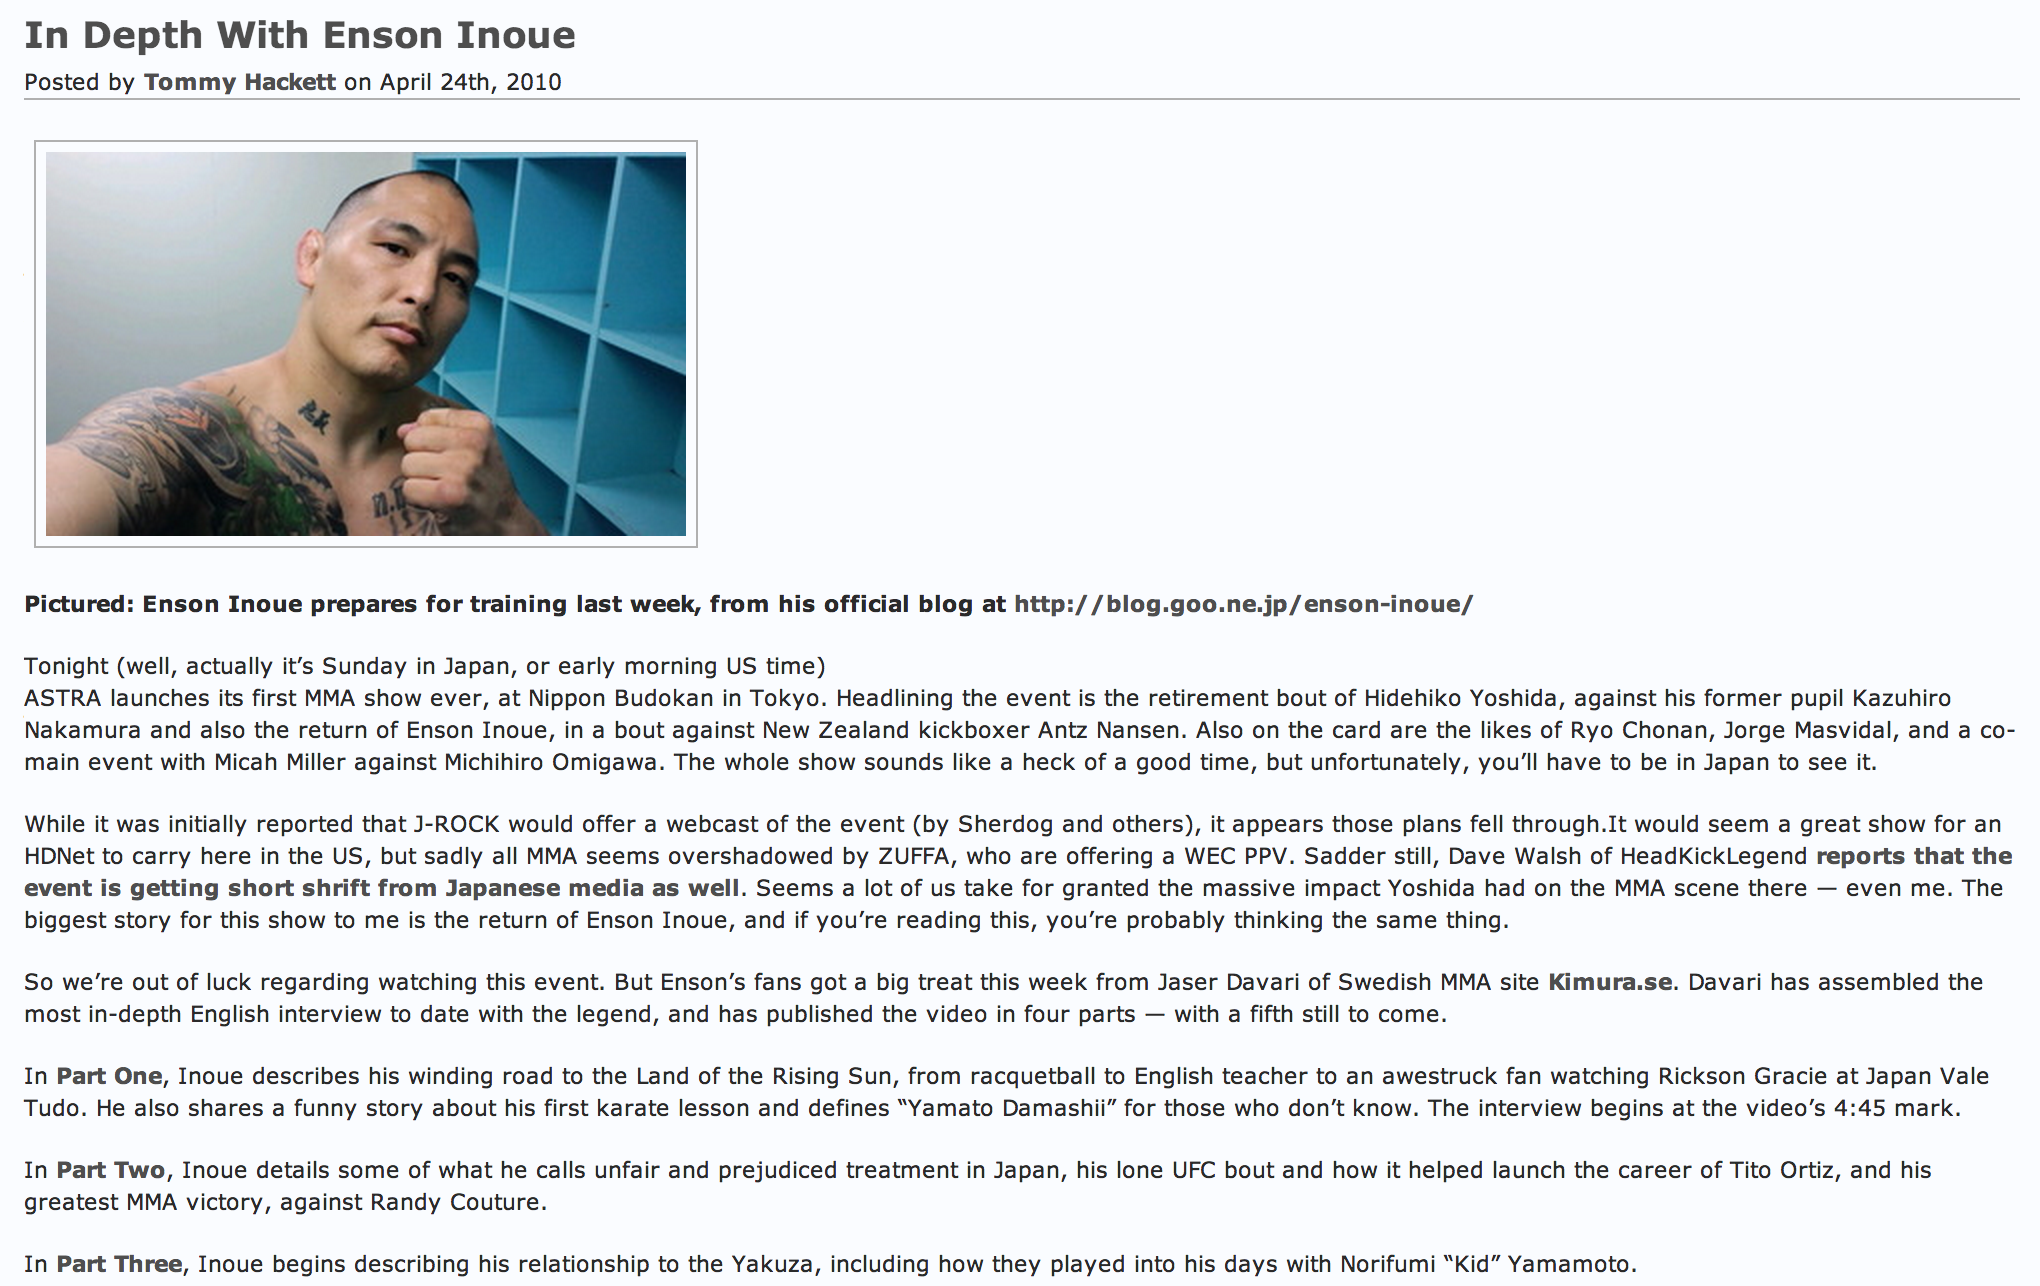 In Depth With Enson Inoue   By Tommy Hackett April 24, 2010